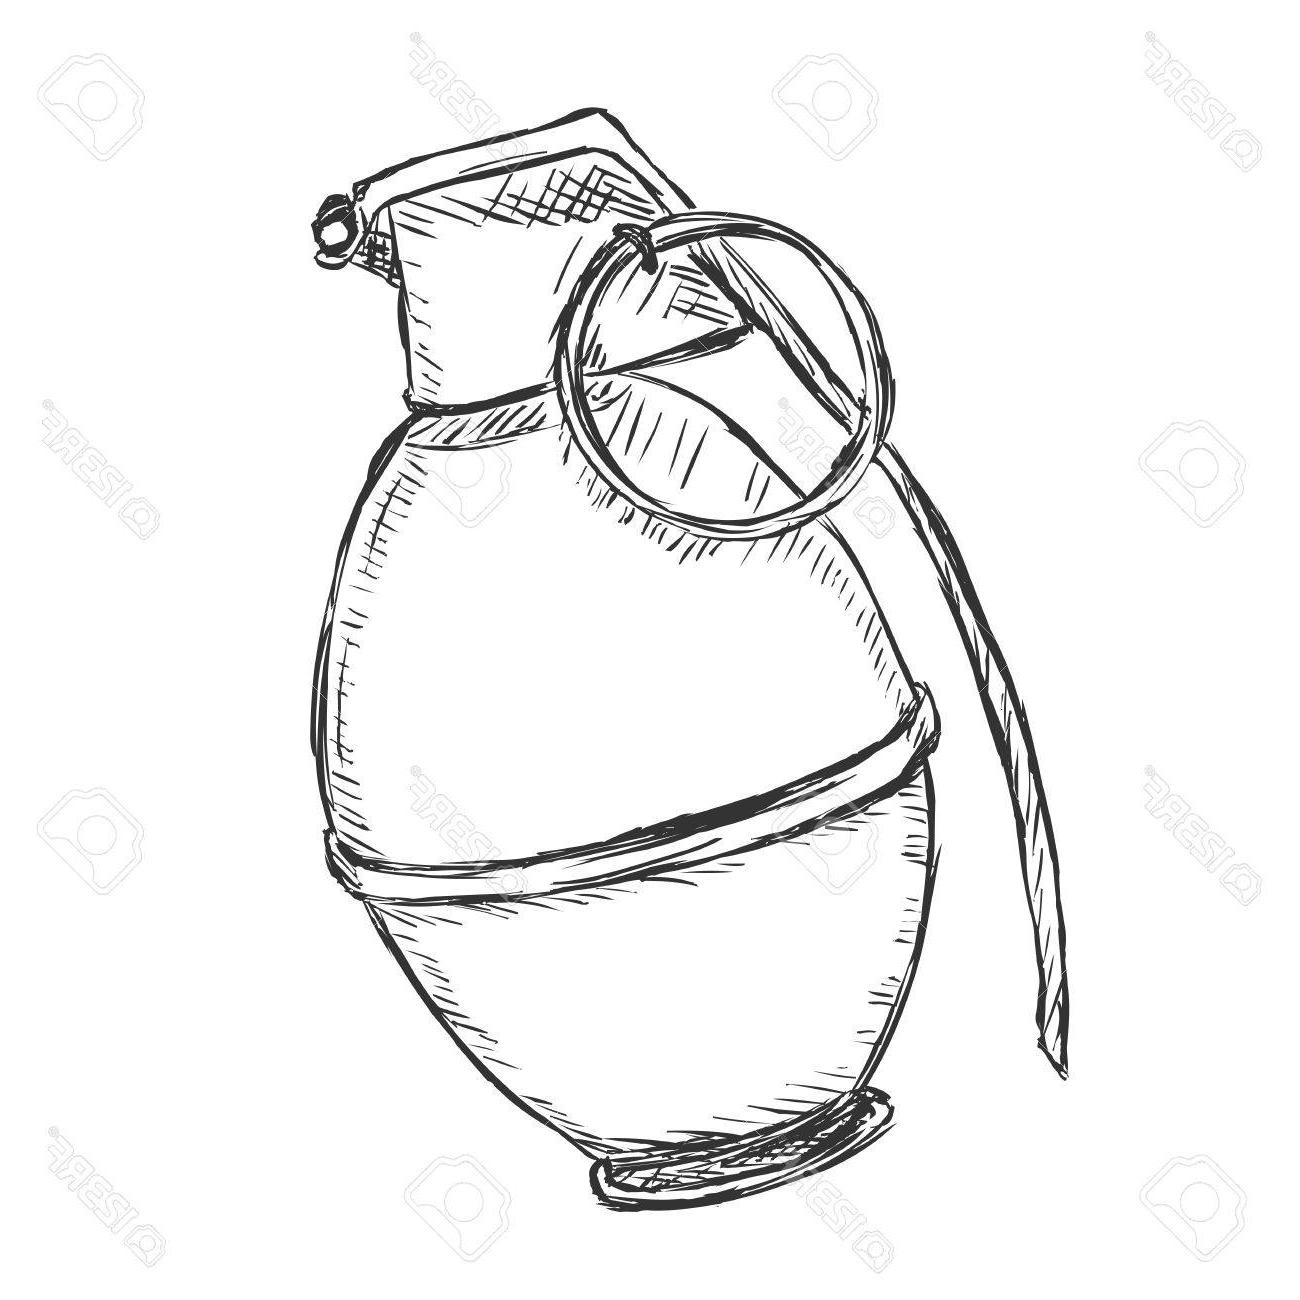 1300x1300 Best 15 Vector Sketch Hand Grenade On White Background Stock Image